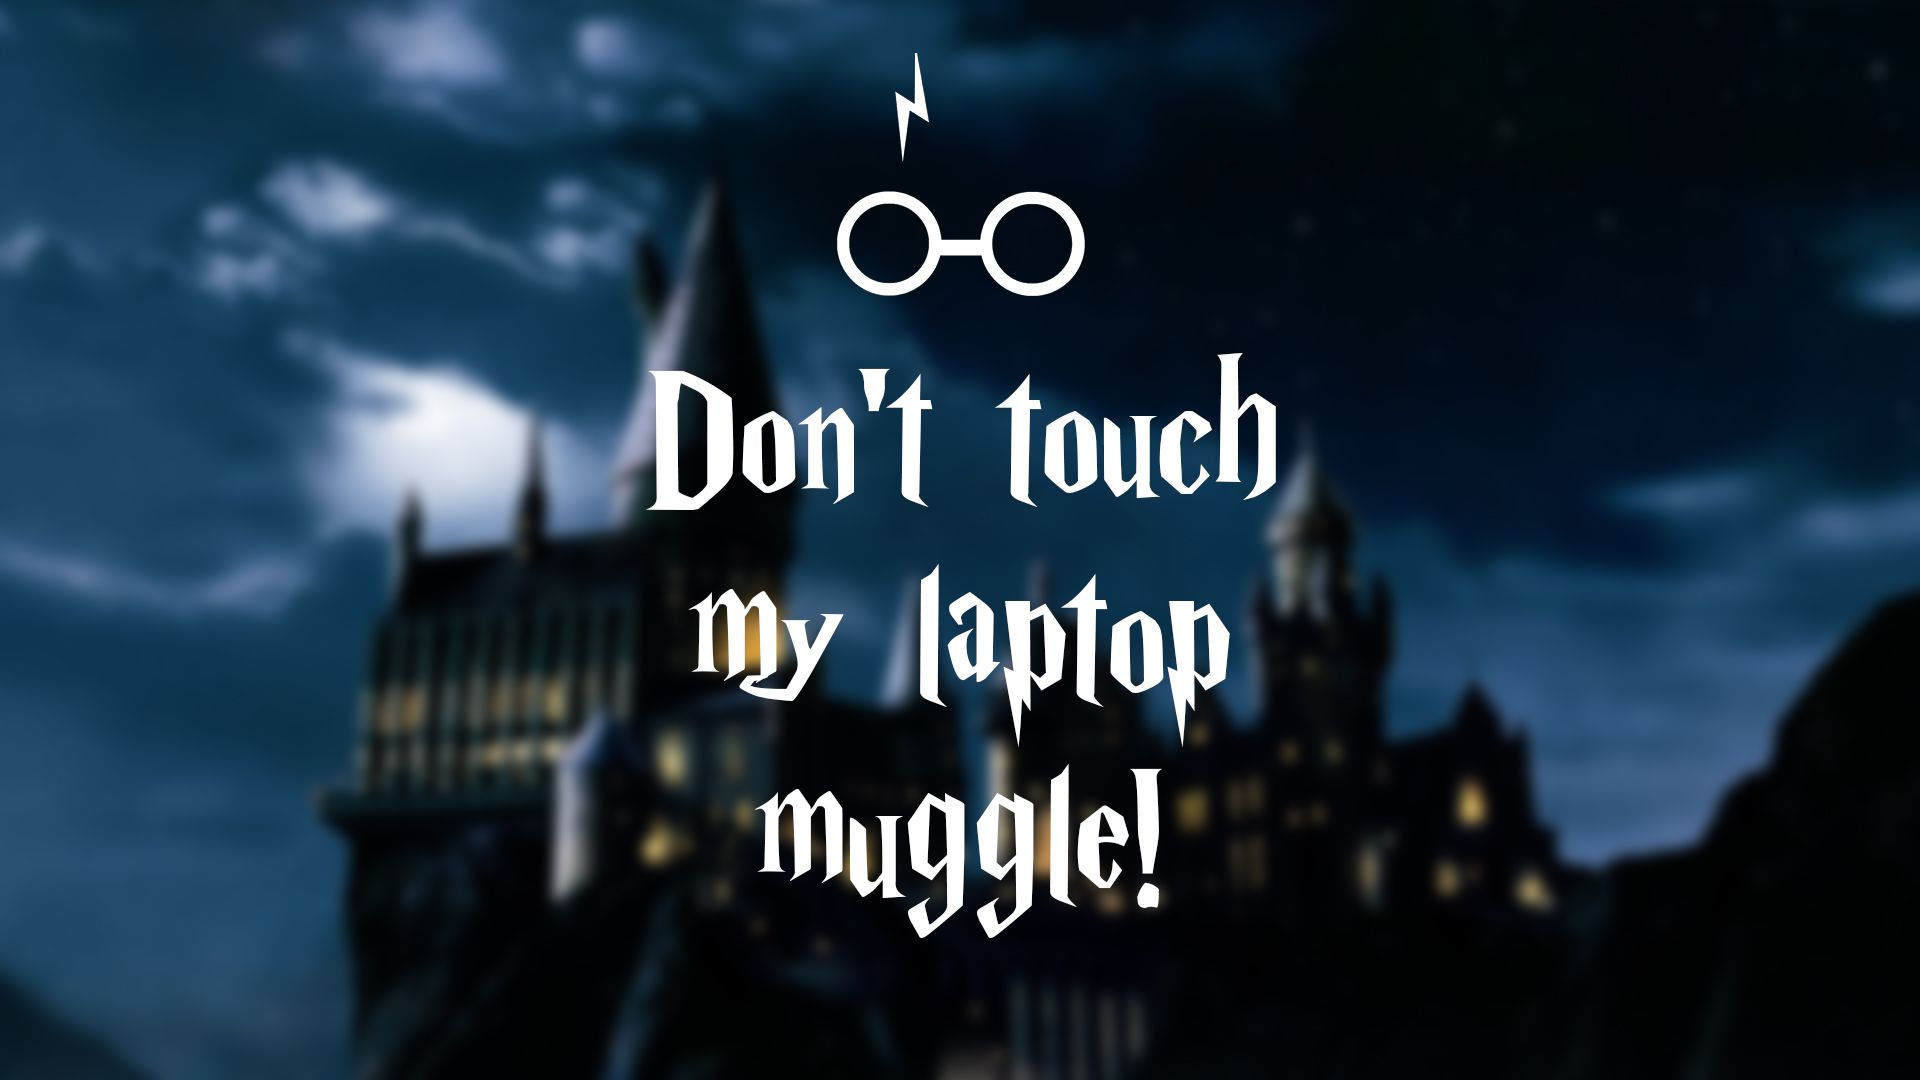 Harry Potter Kindle Hd Wallpapers Top Free Harry Potter